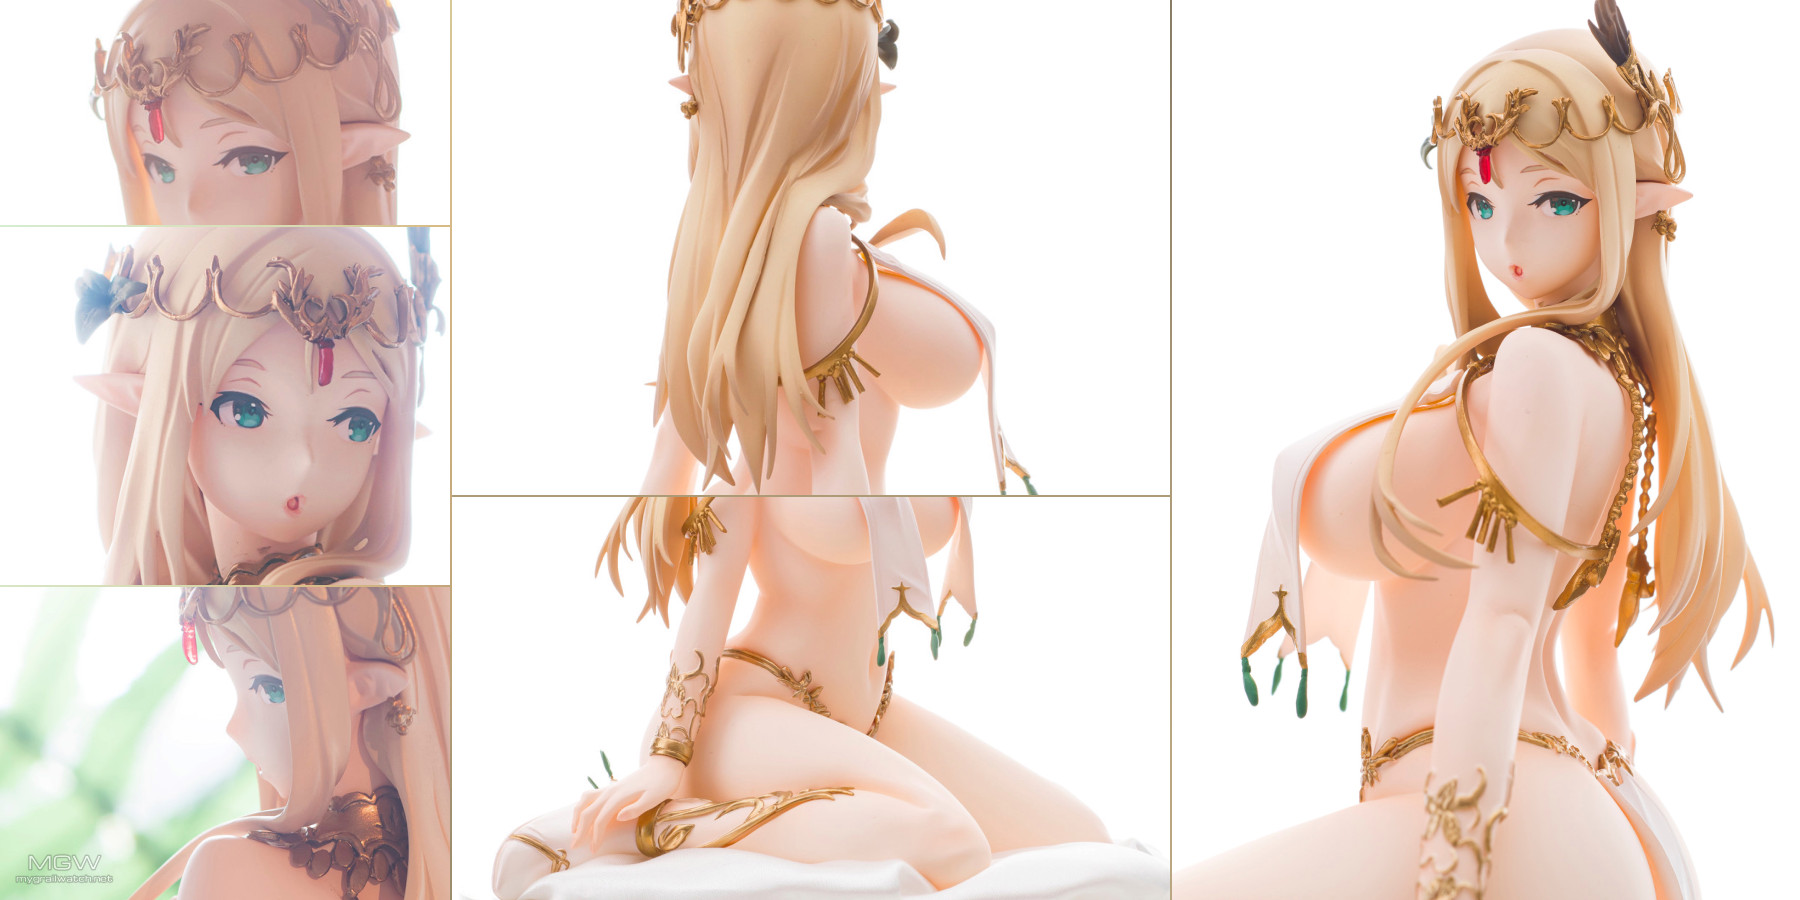 Elven Pillow Lilly Relium by I.V.E from Caress of Venus houtengeki figure collection